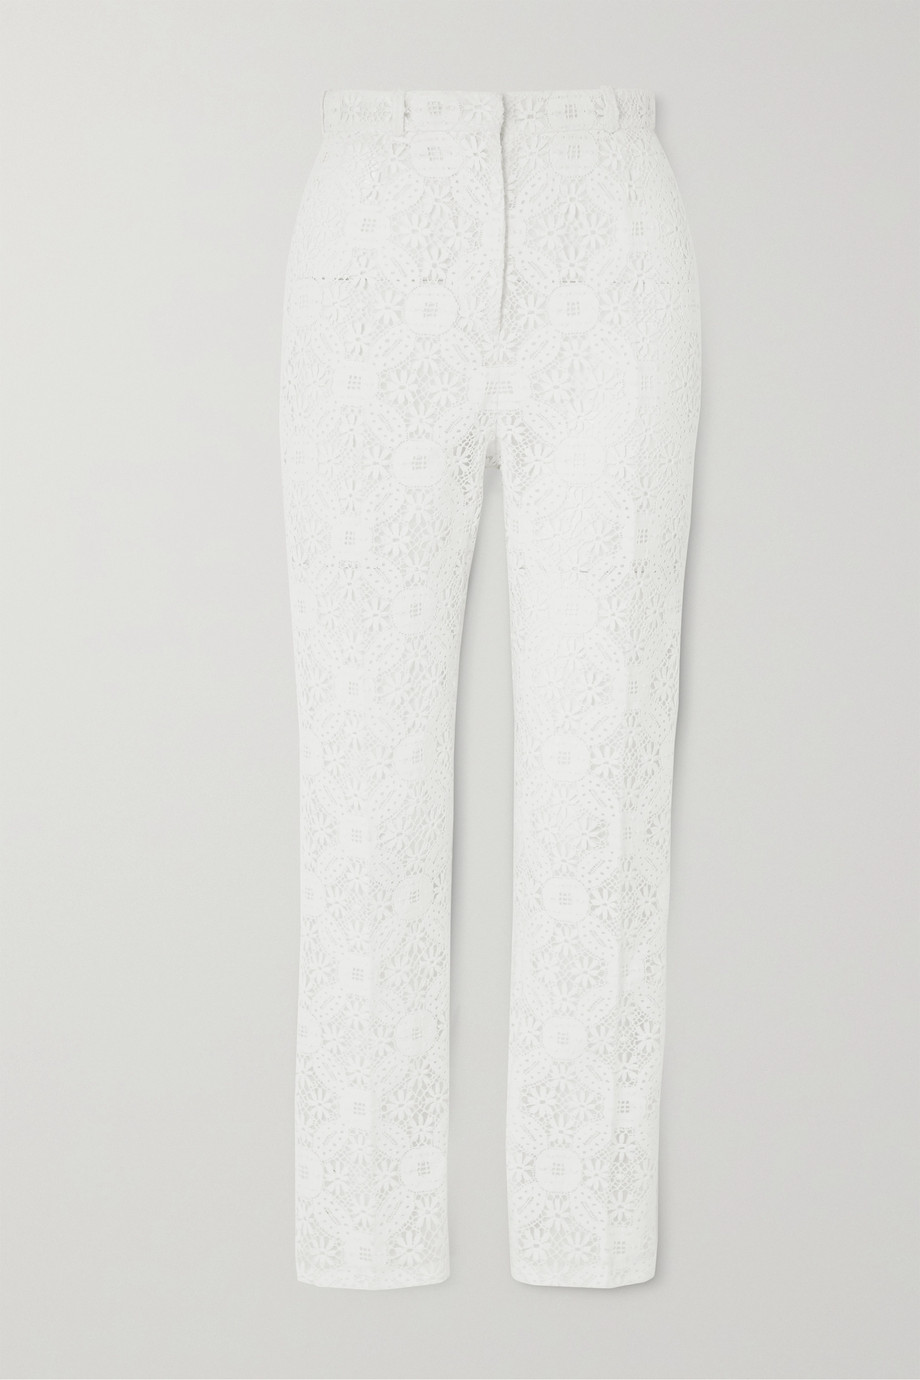 ALEXANDER MCQUEEN Cotton-blend guipure lace tapered pants